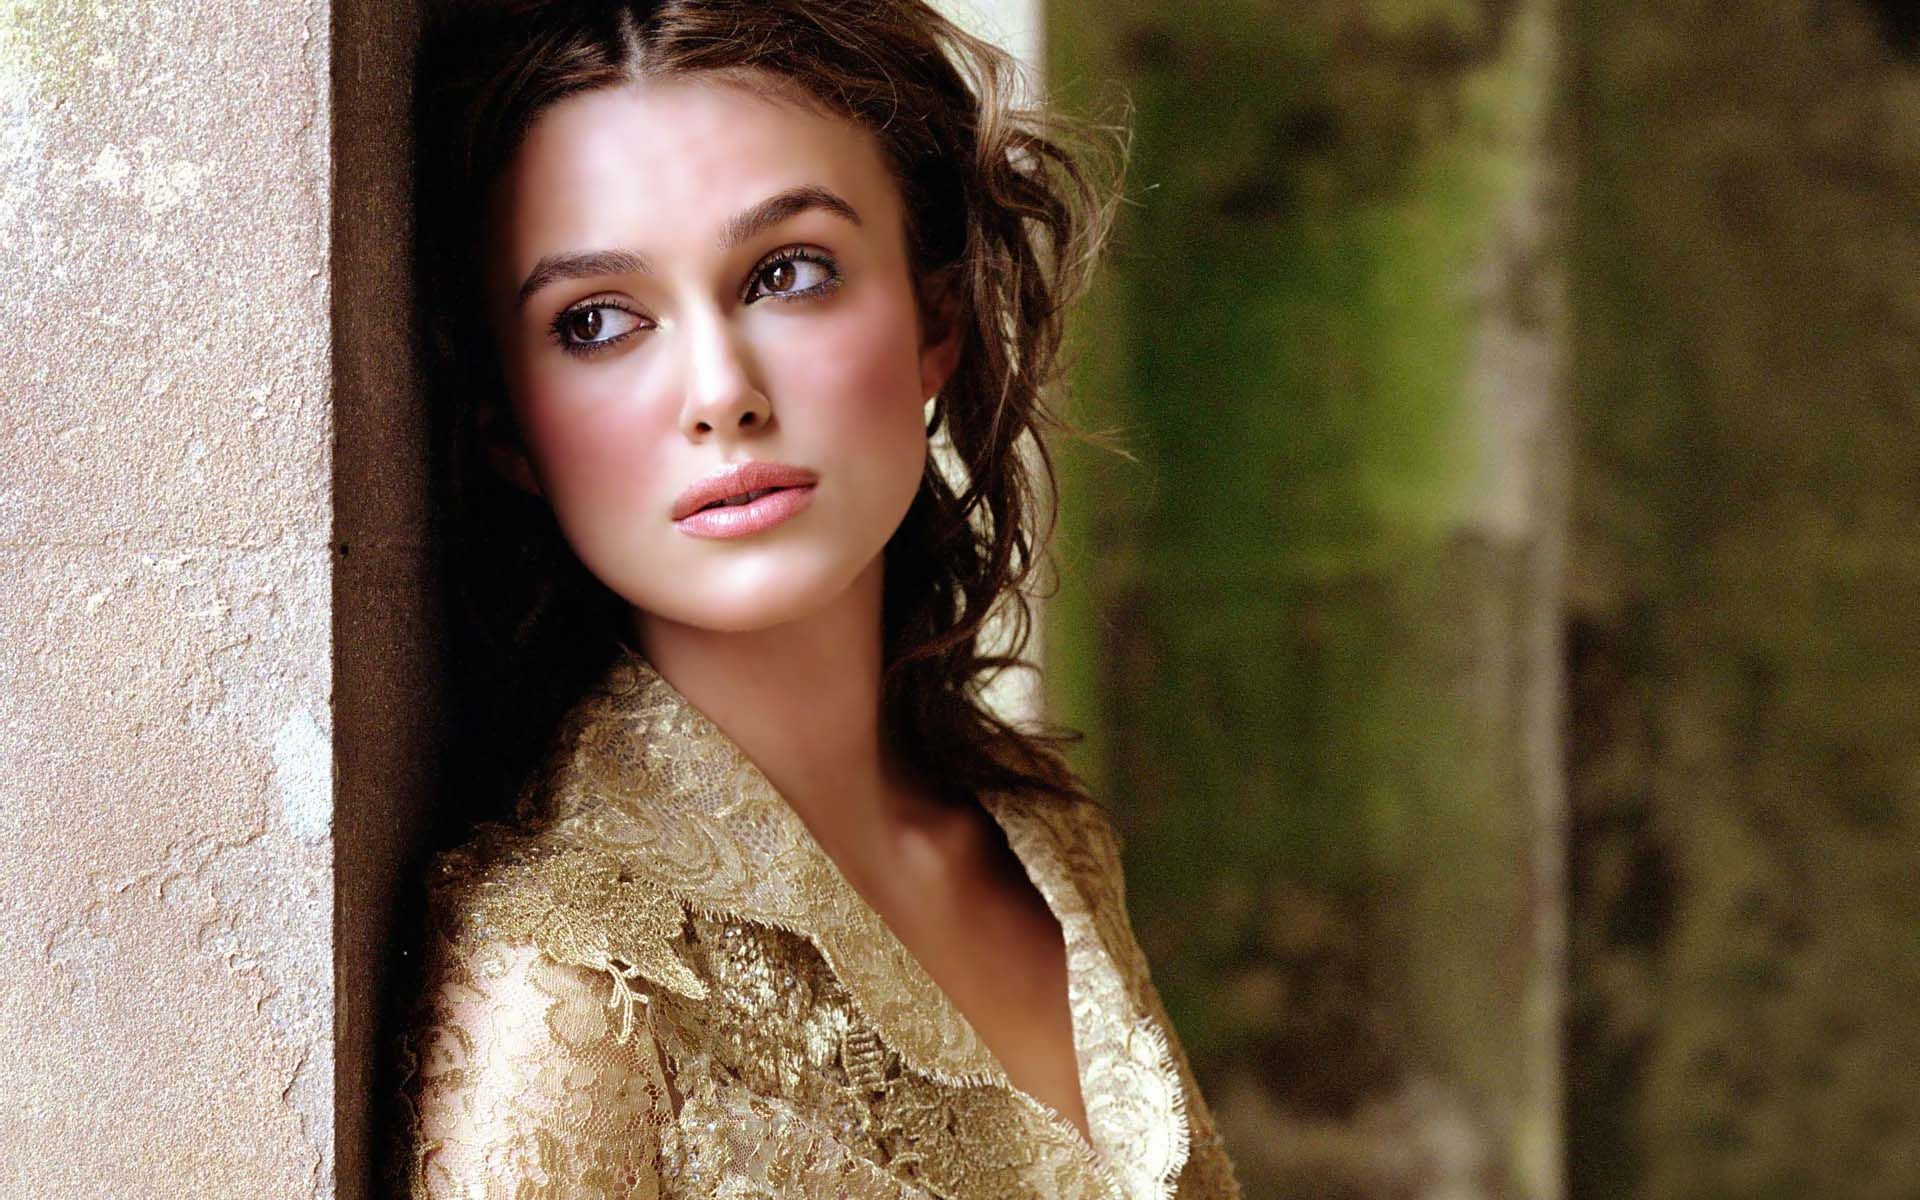 Fantastic Keira Knightley Beauty Look Hd Desktop Background Mobile Free Wallpaper